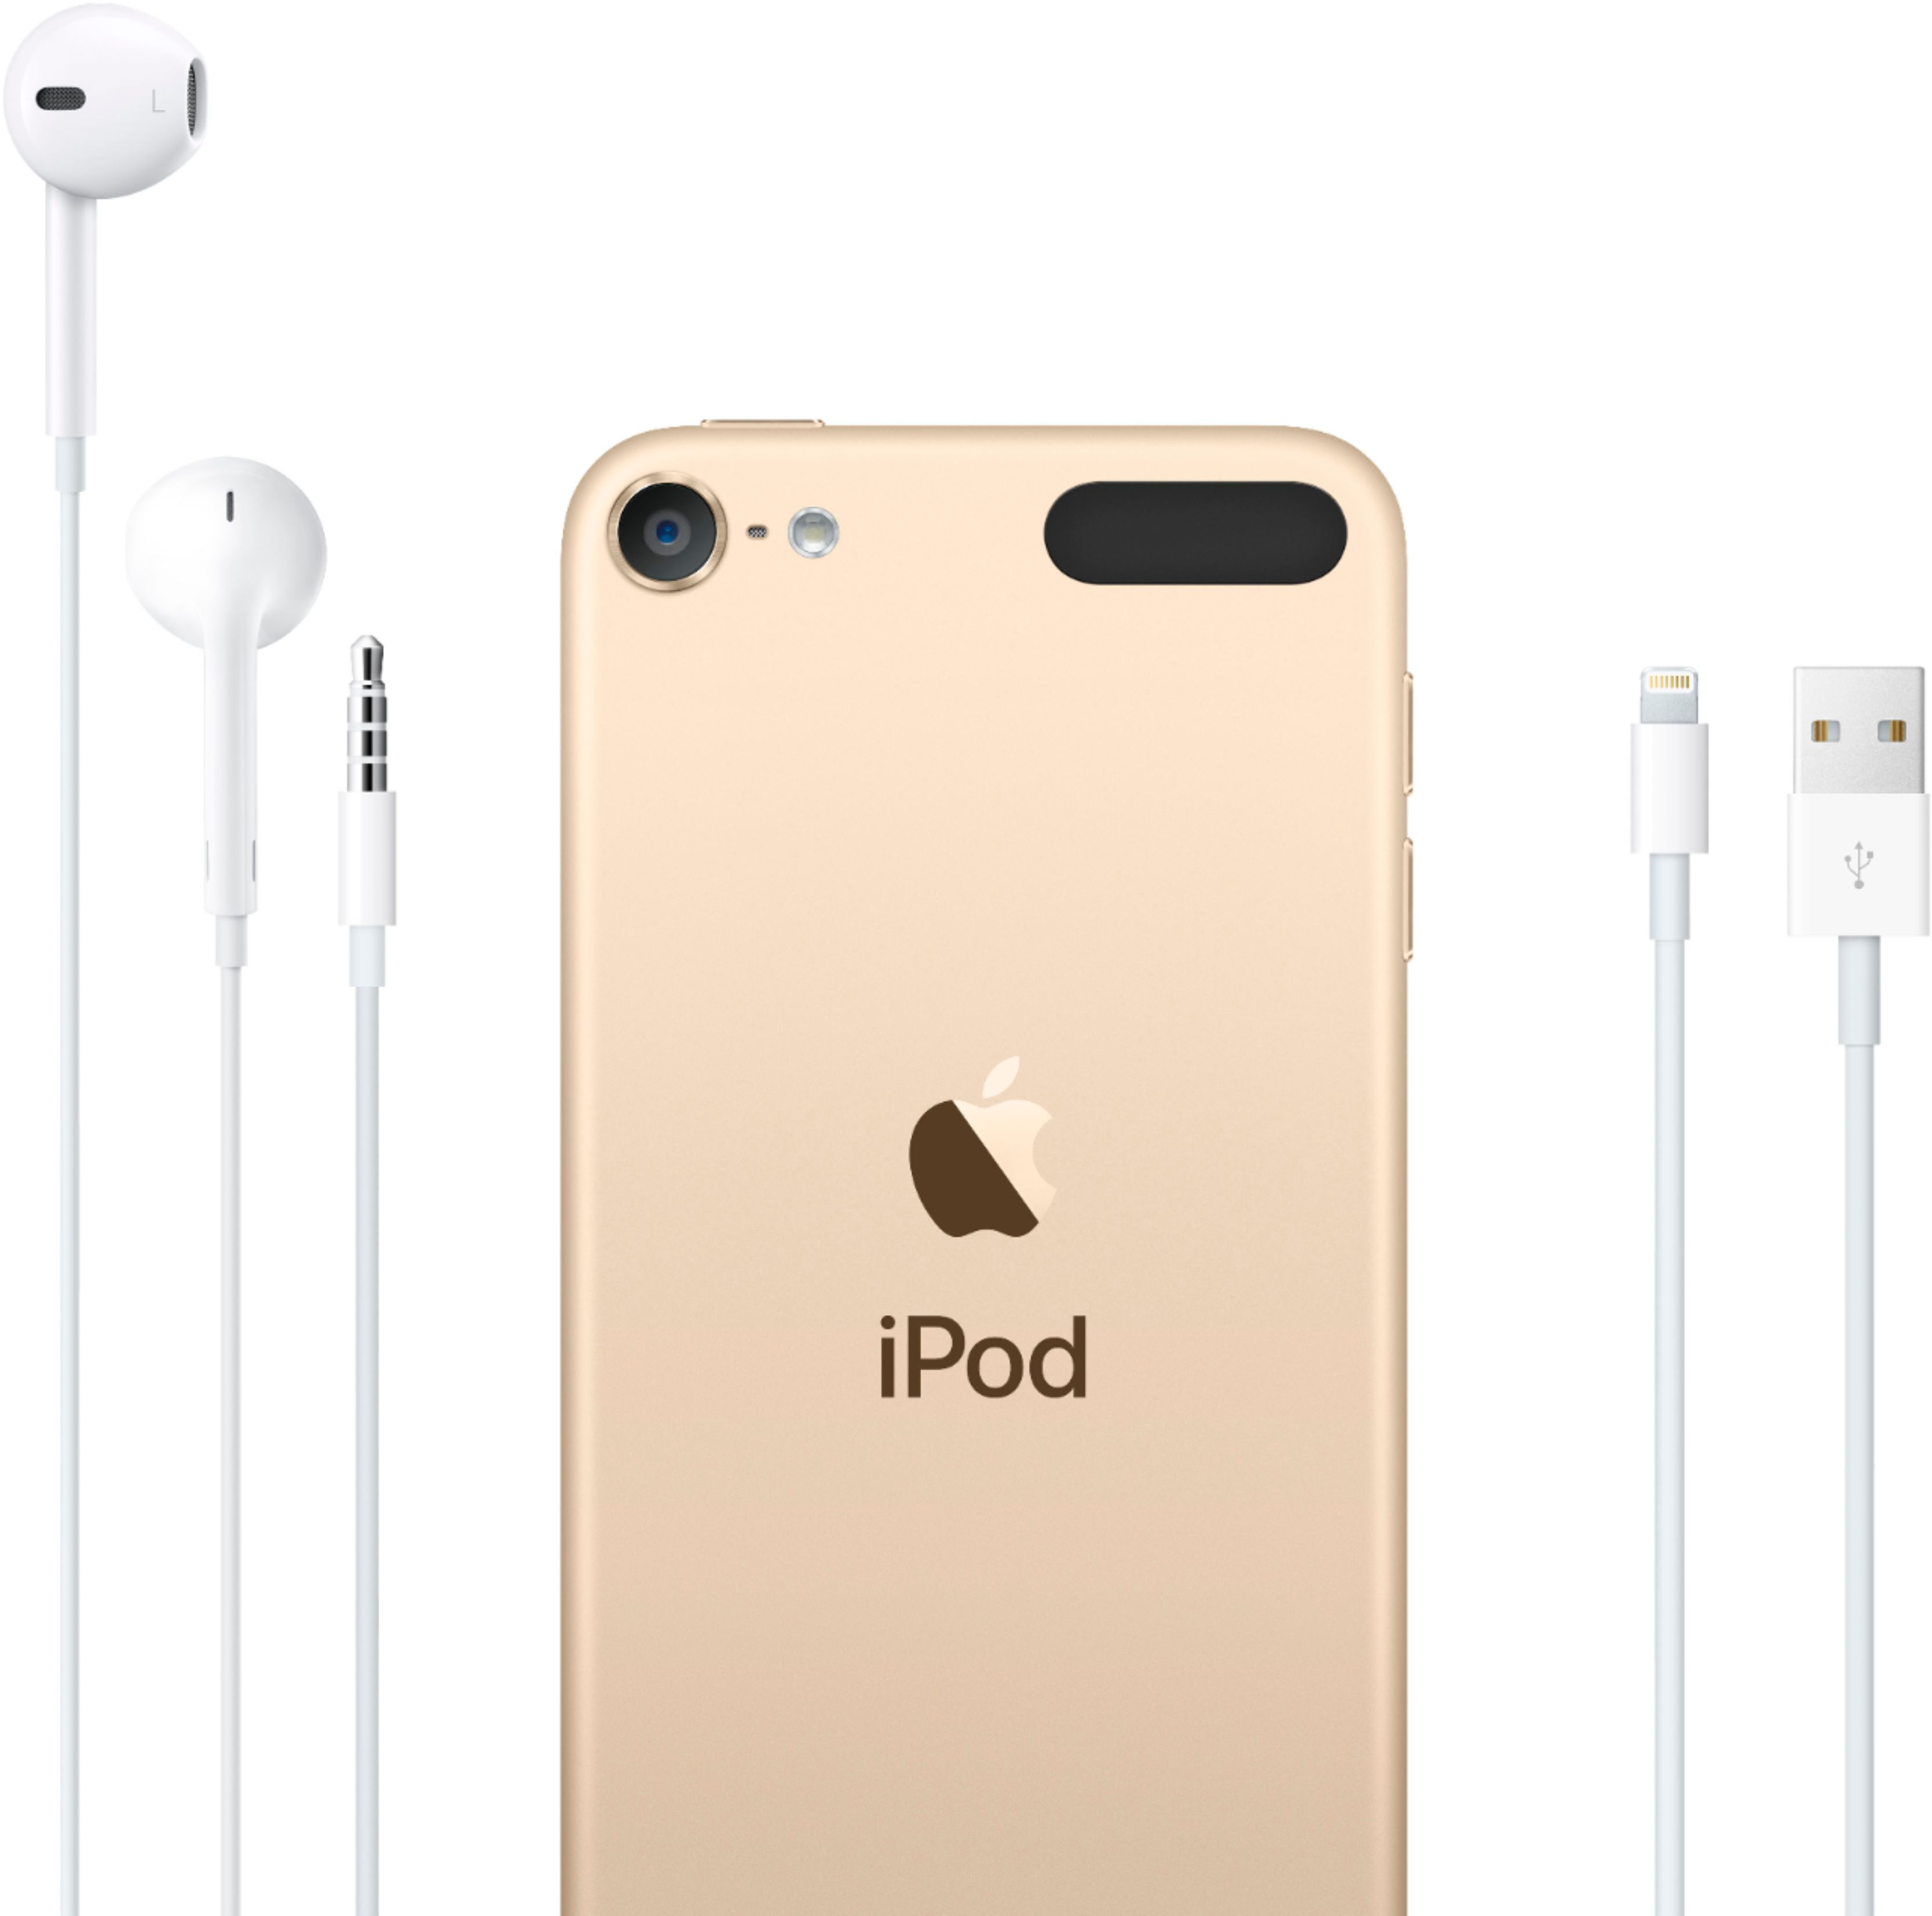 Brand New Apple iPod touch 32GB MP3 Player (7th Generation Latest Model) - Gold | eBay